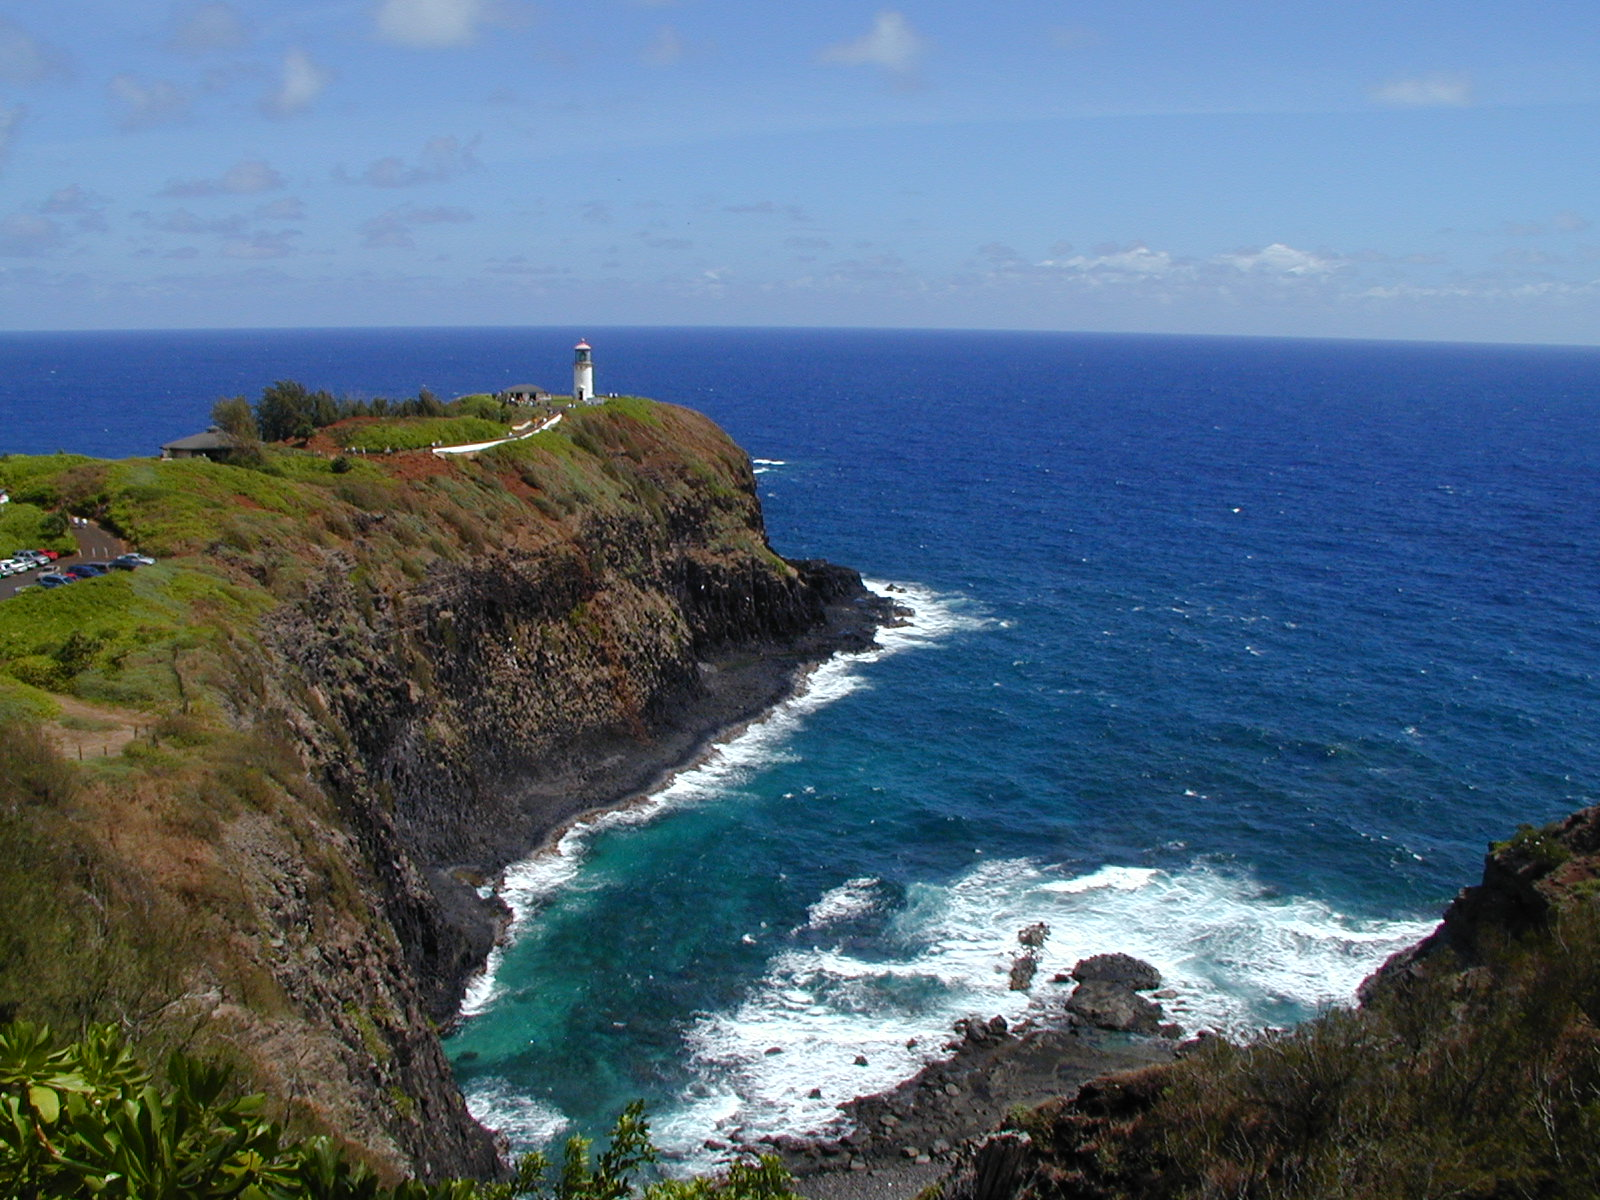 –Kilauea Light House, Kauai, Hawaii